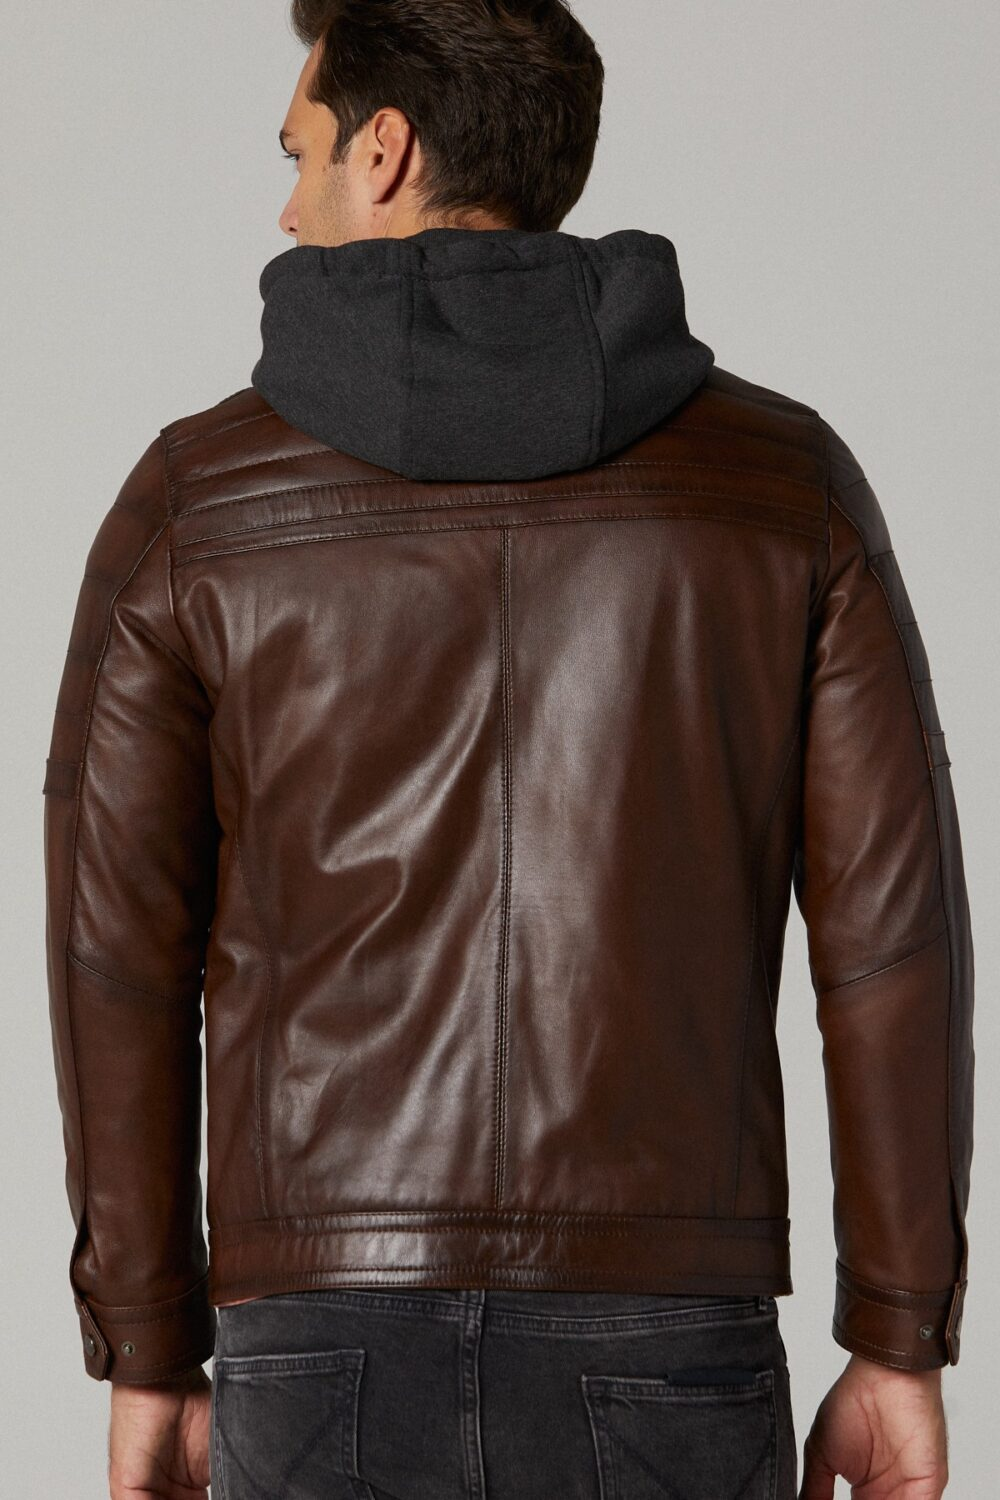 Bespoke Leather Jackets